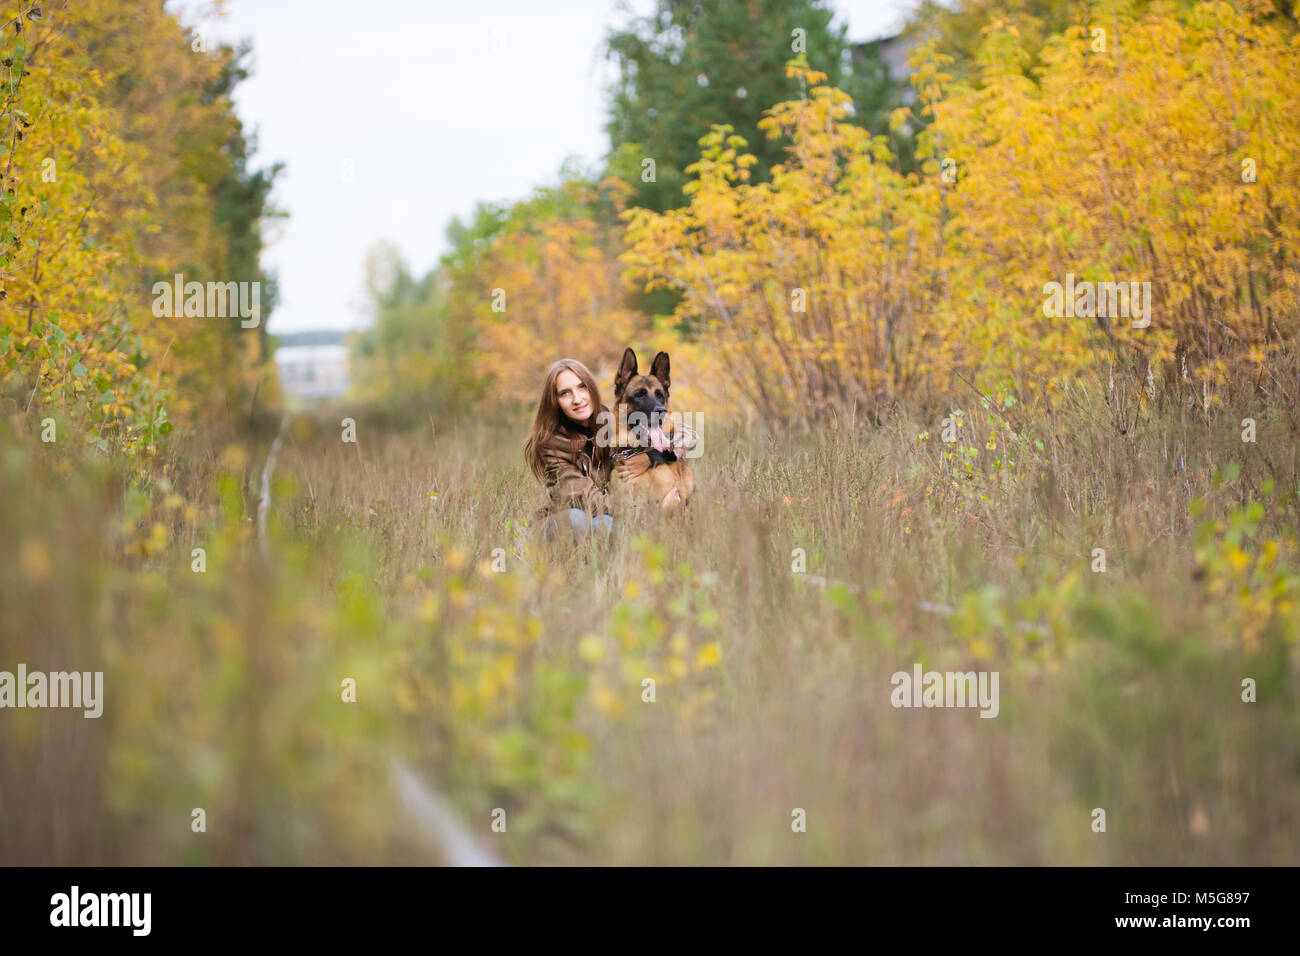 Attractive young woman walking wuth her dog German shepherd at autumn forest, near rail way - wide angle - Stock Image